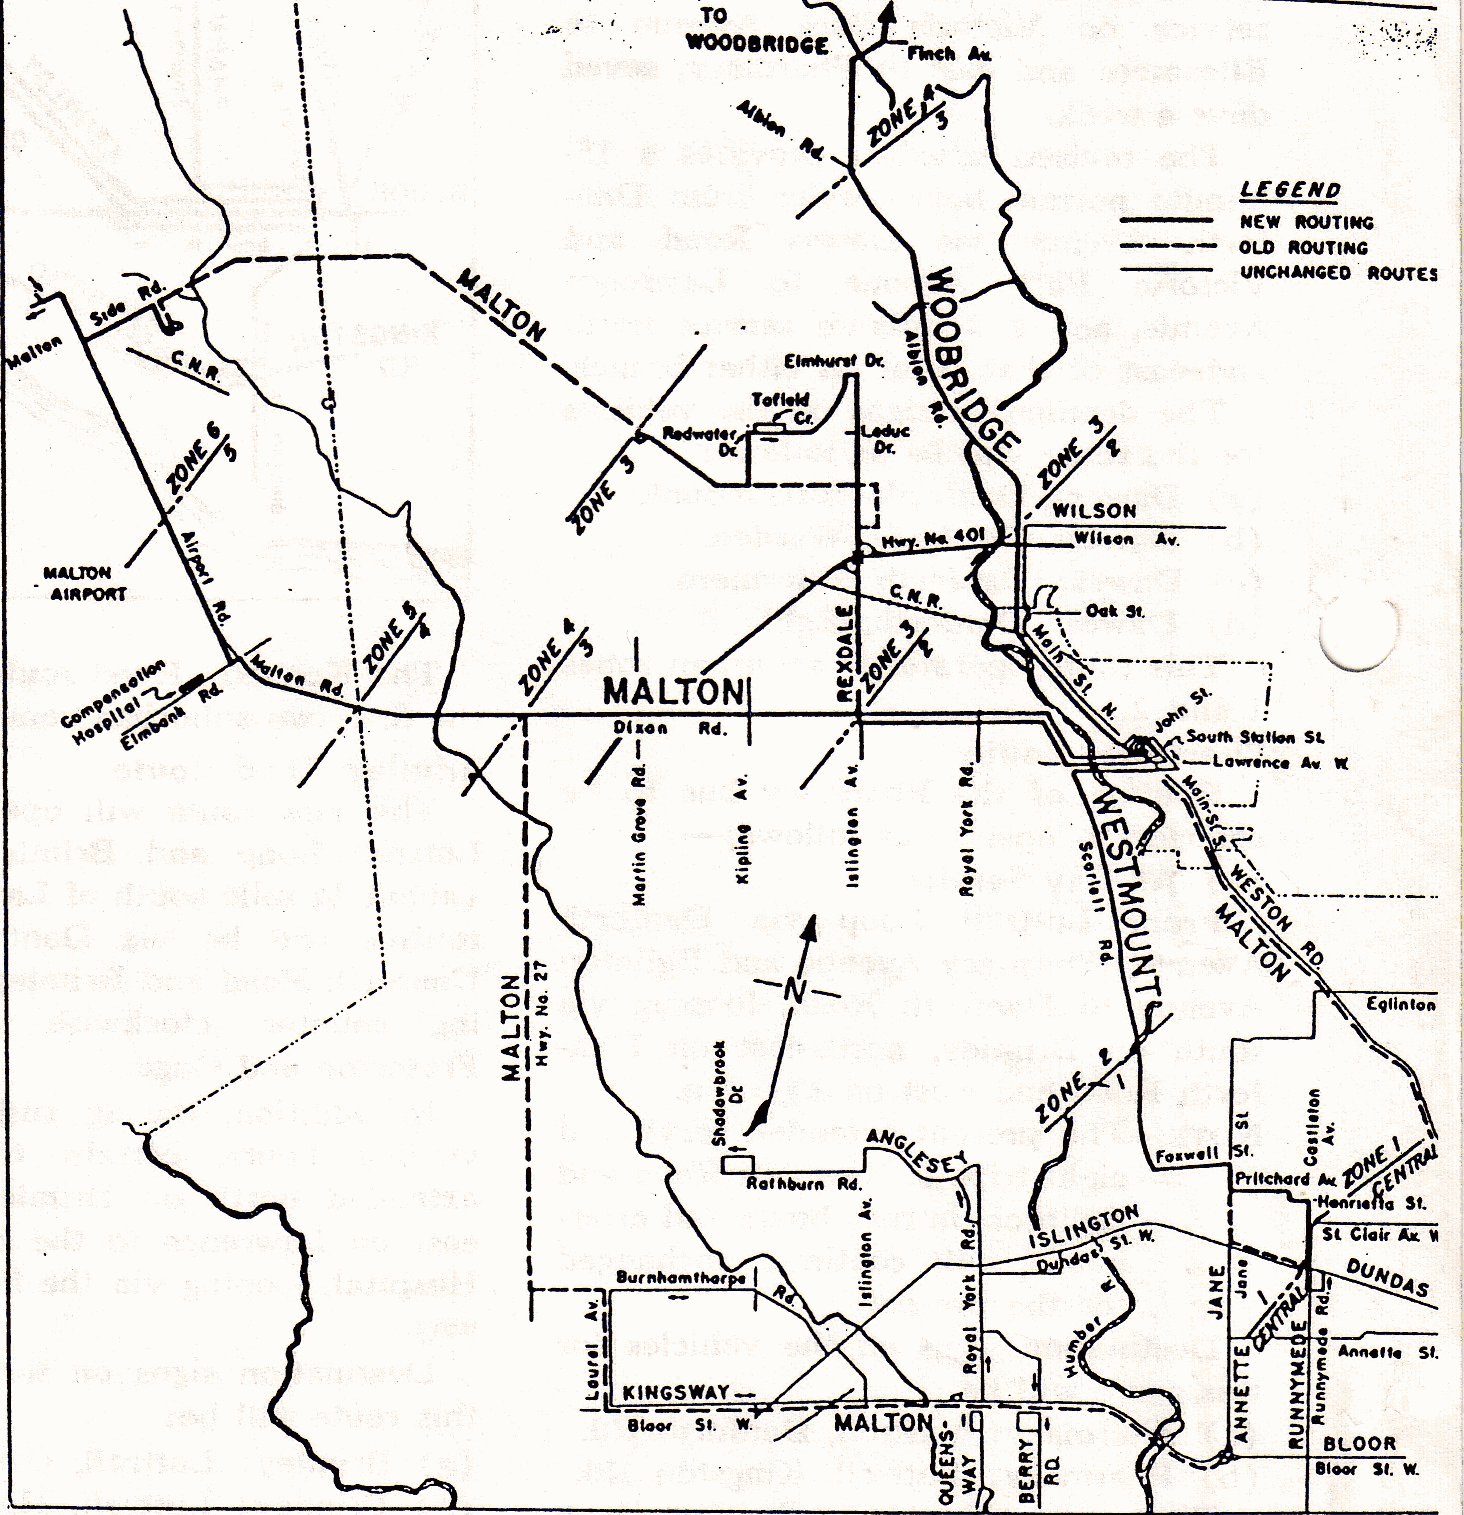 19551212 - Multiple Routes - Etobicoke Map